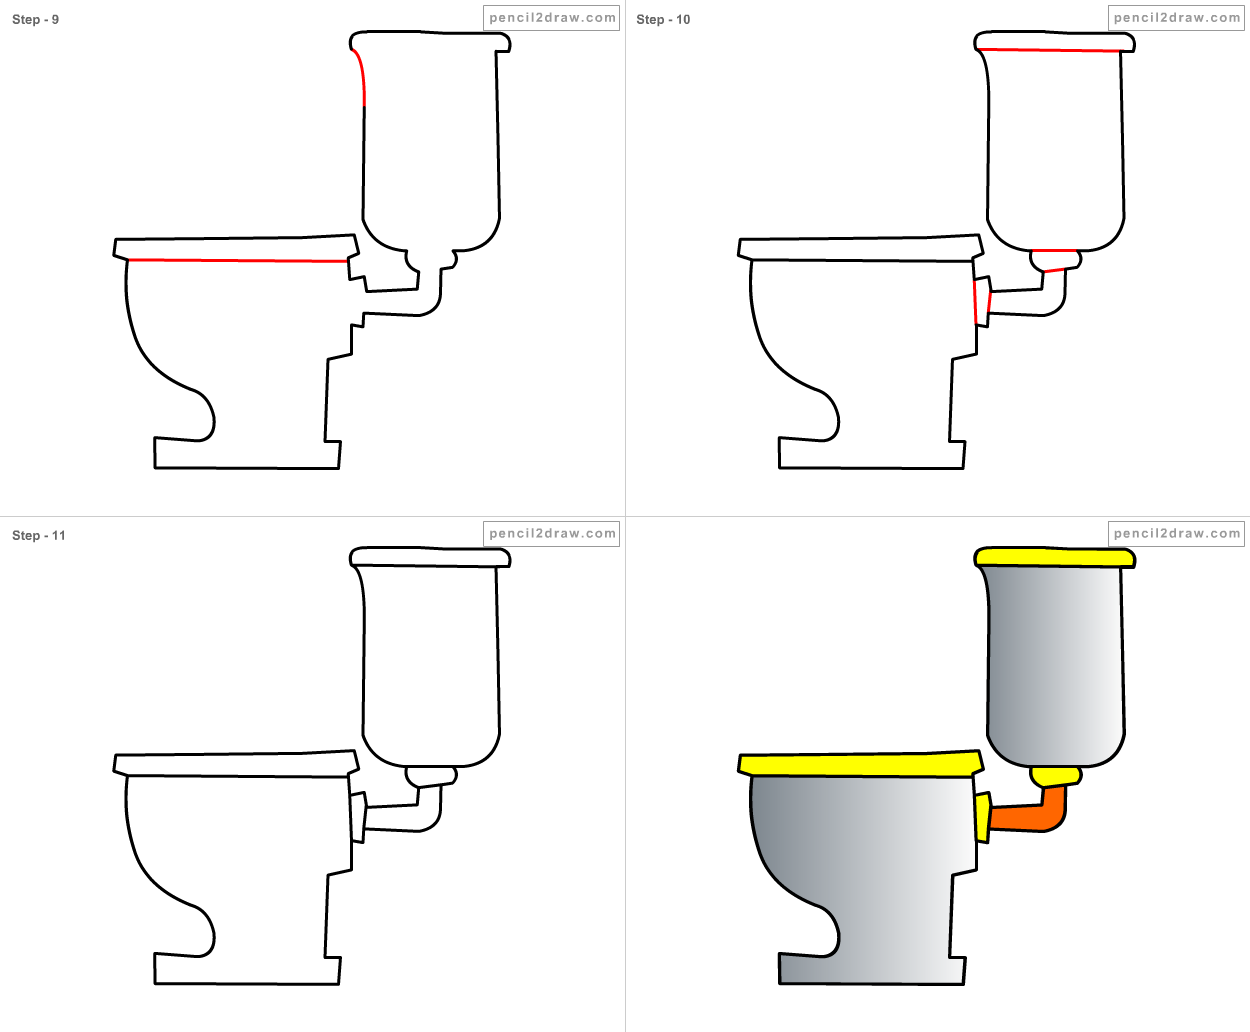 How To Draw A Bathroom. How To Draw Bathroom For Kids Step By Step 1482 How To Draw A Bathroom